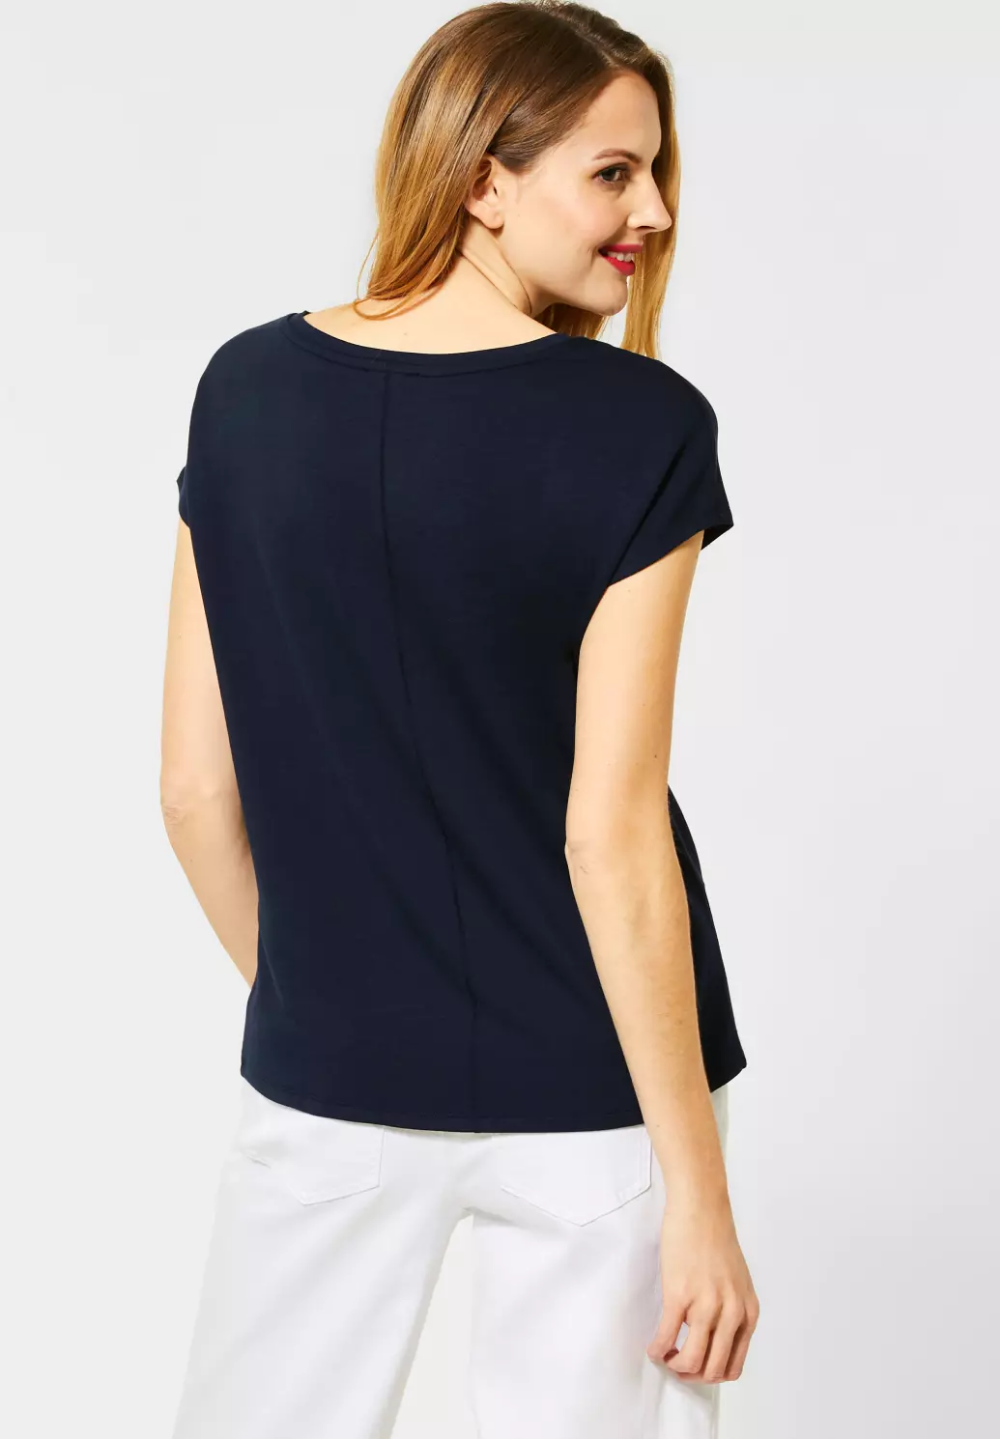 Street One T Shirt Im Basic Style Deep Blue Street One Online Shop Basic Style Open Shoulder Tops Style